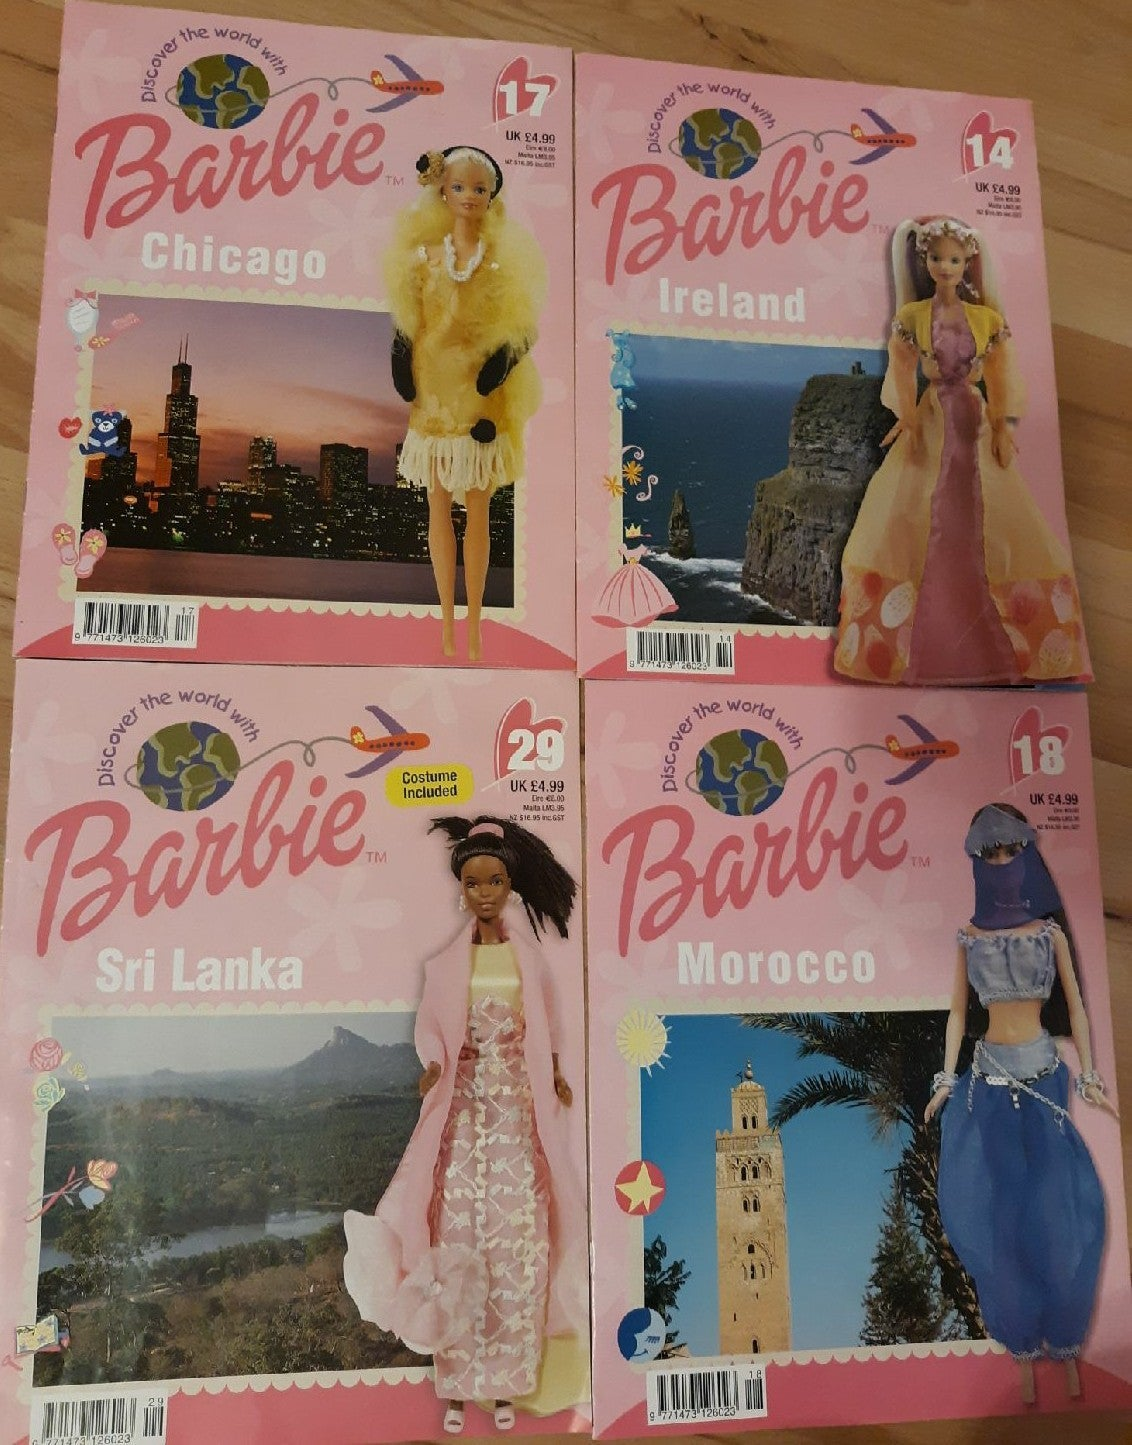 Discover The World with Barbie Chicago,